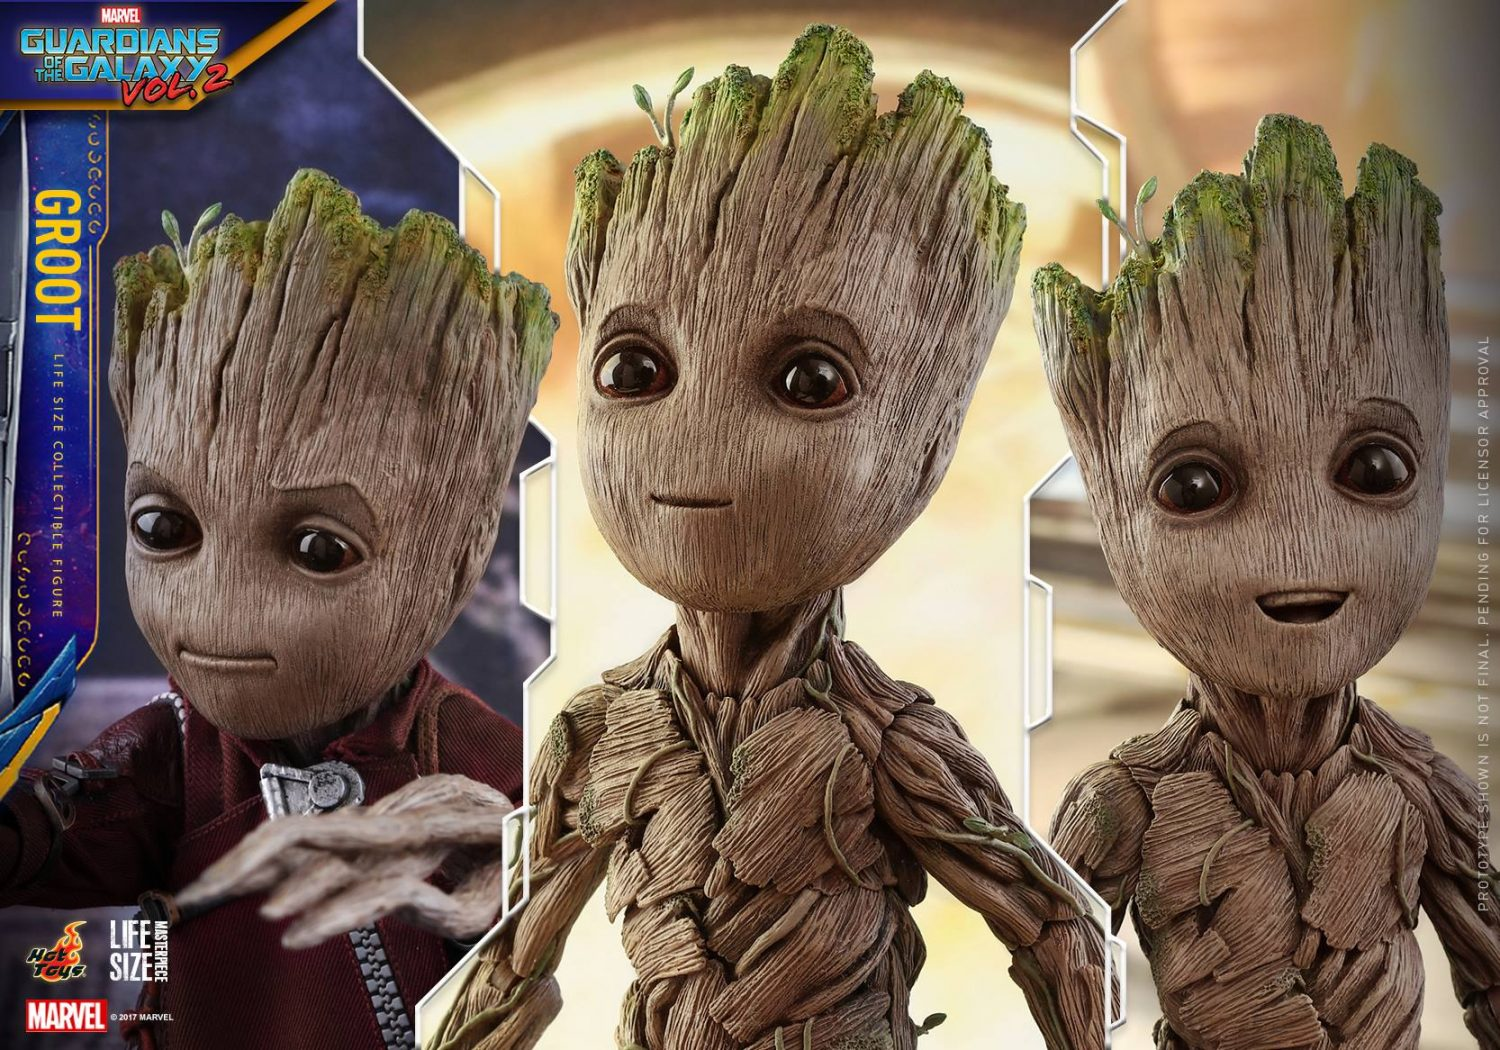 Hot Toys Guardians Of The Galaxy Vol. 2 – Baby Groot Life Size Figure